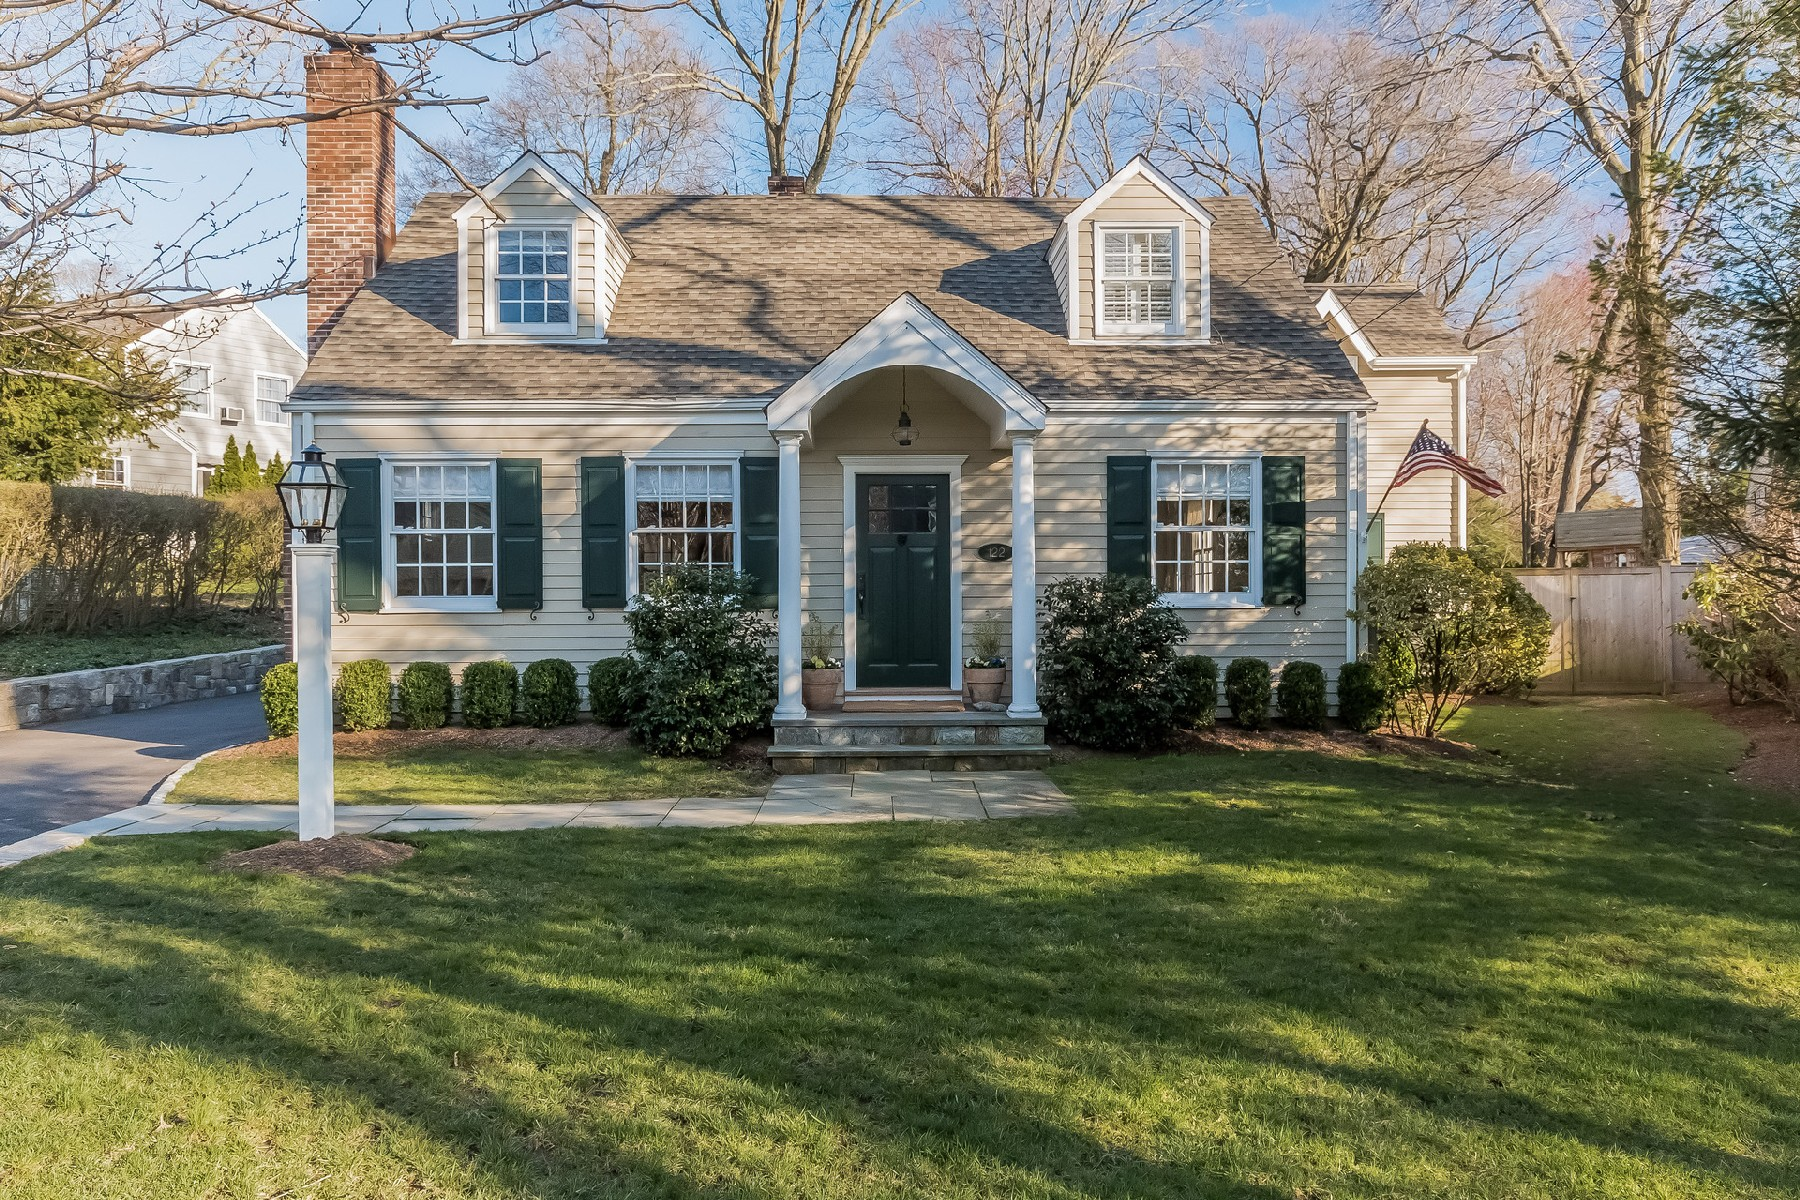 Single Family Home for Sale at Charming Convenience Equals Perfection 122 Hollow Tree Ridge Road Darien, Connecticut, 06820 United States